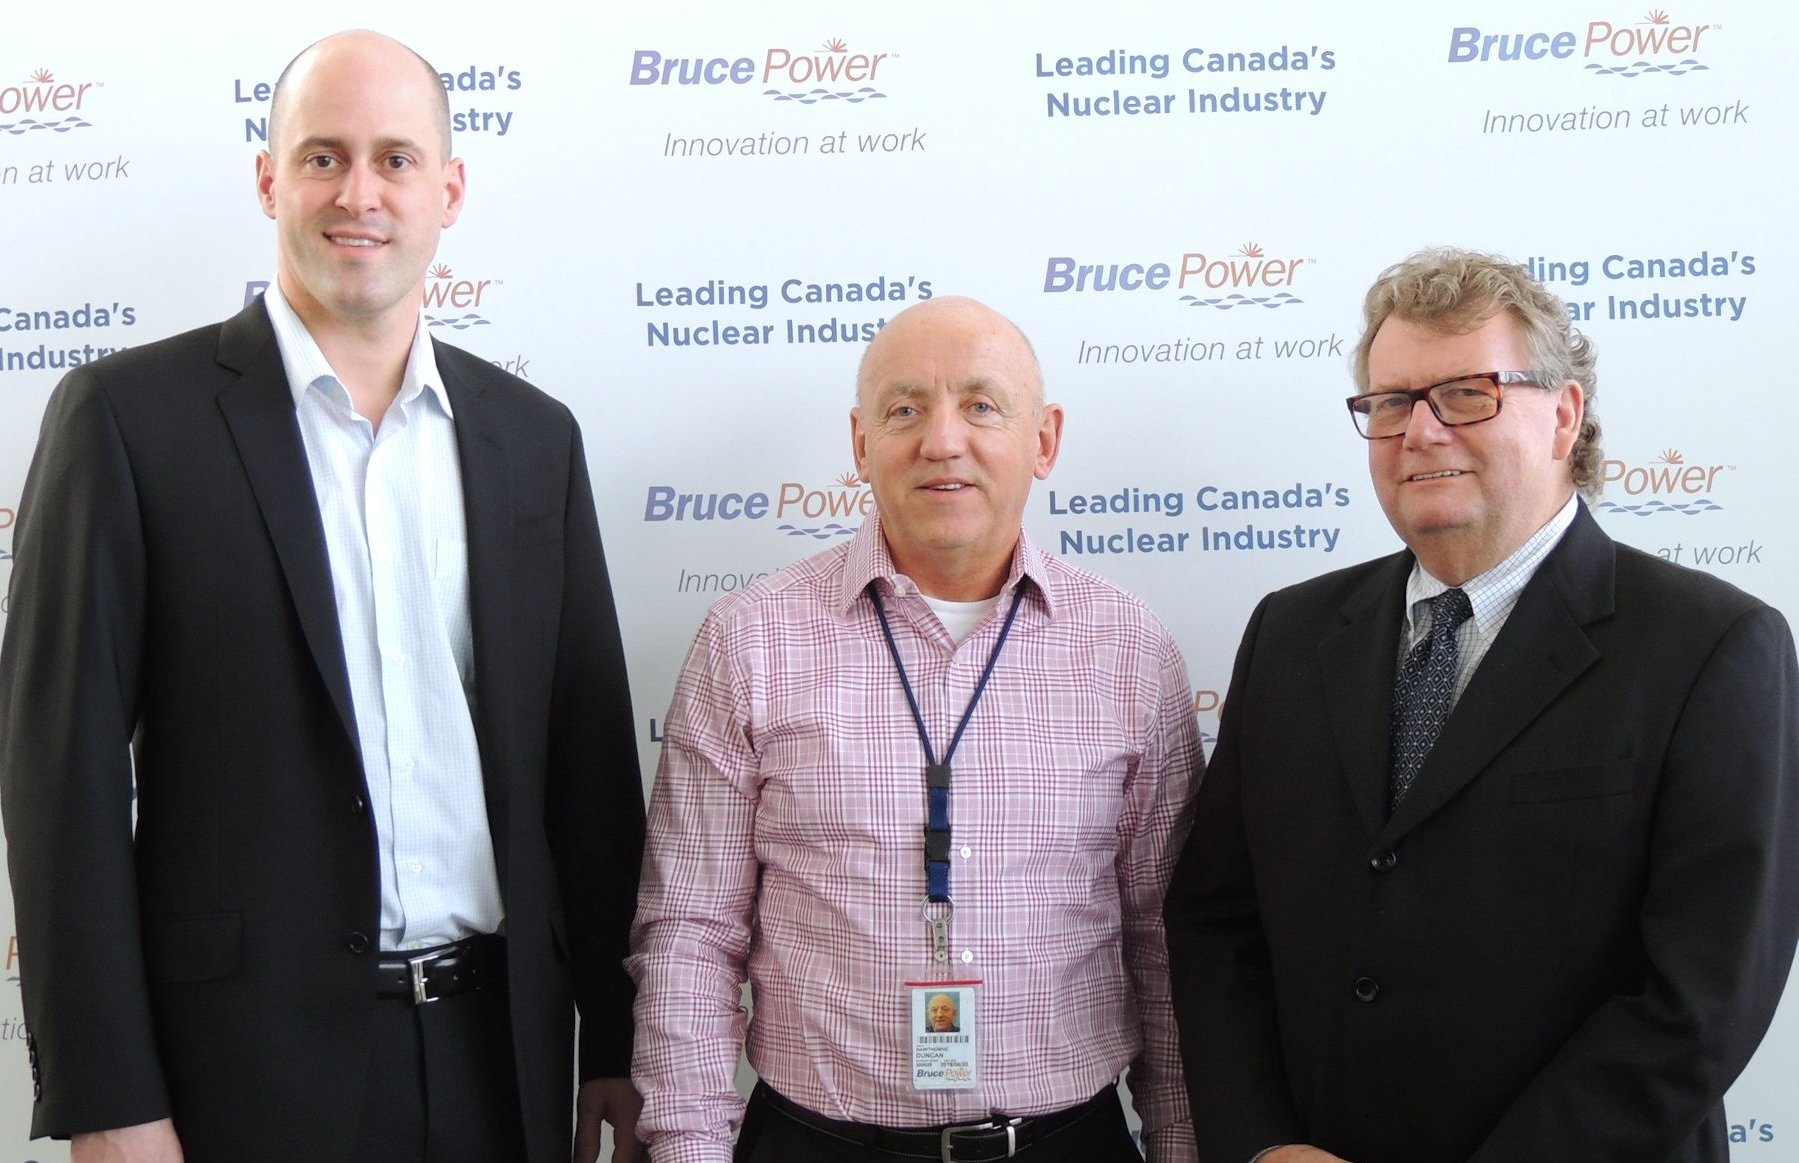 Bruce Power selected to participate in prestigious international peer review